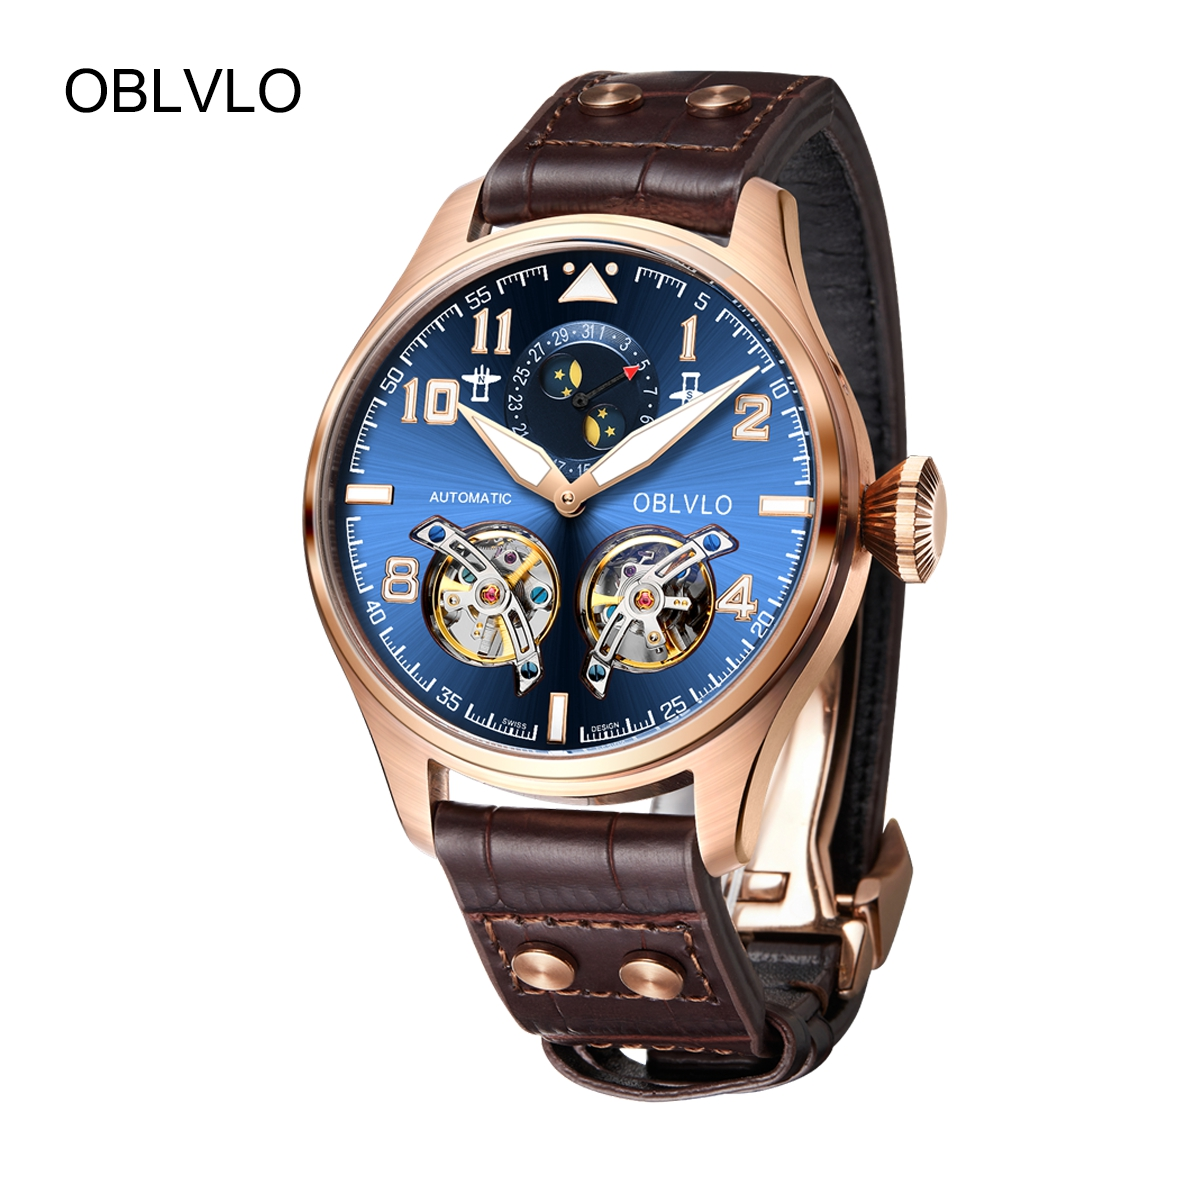 OBLVLO Mens Luxury Watches Rose Gold Automatic Watches Tourbillon Leather Strap Watch OBL8232-PLS